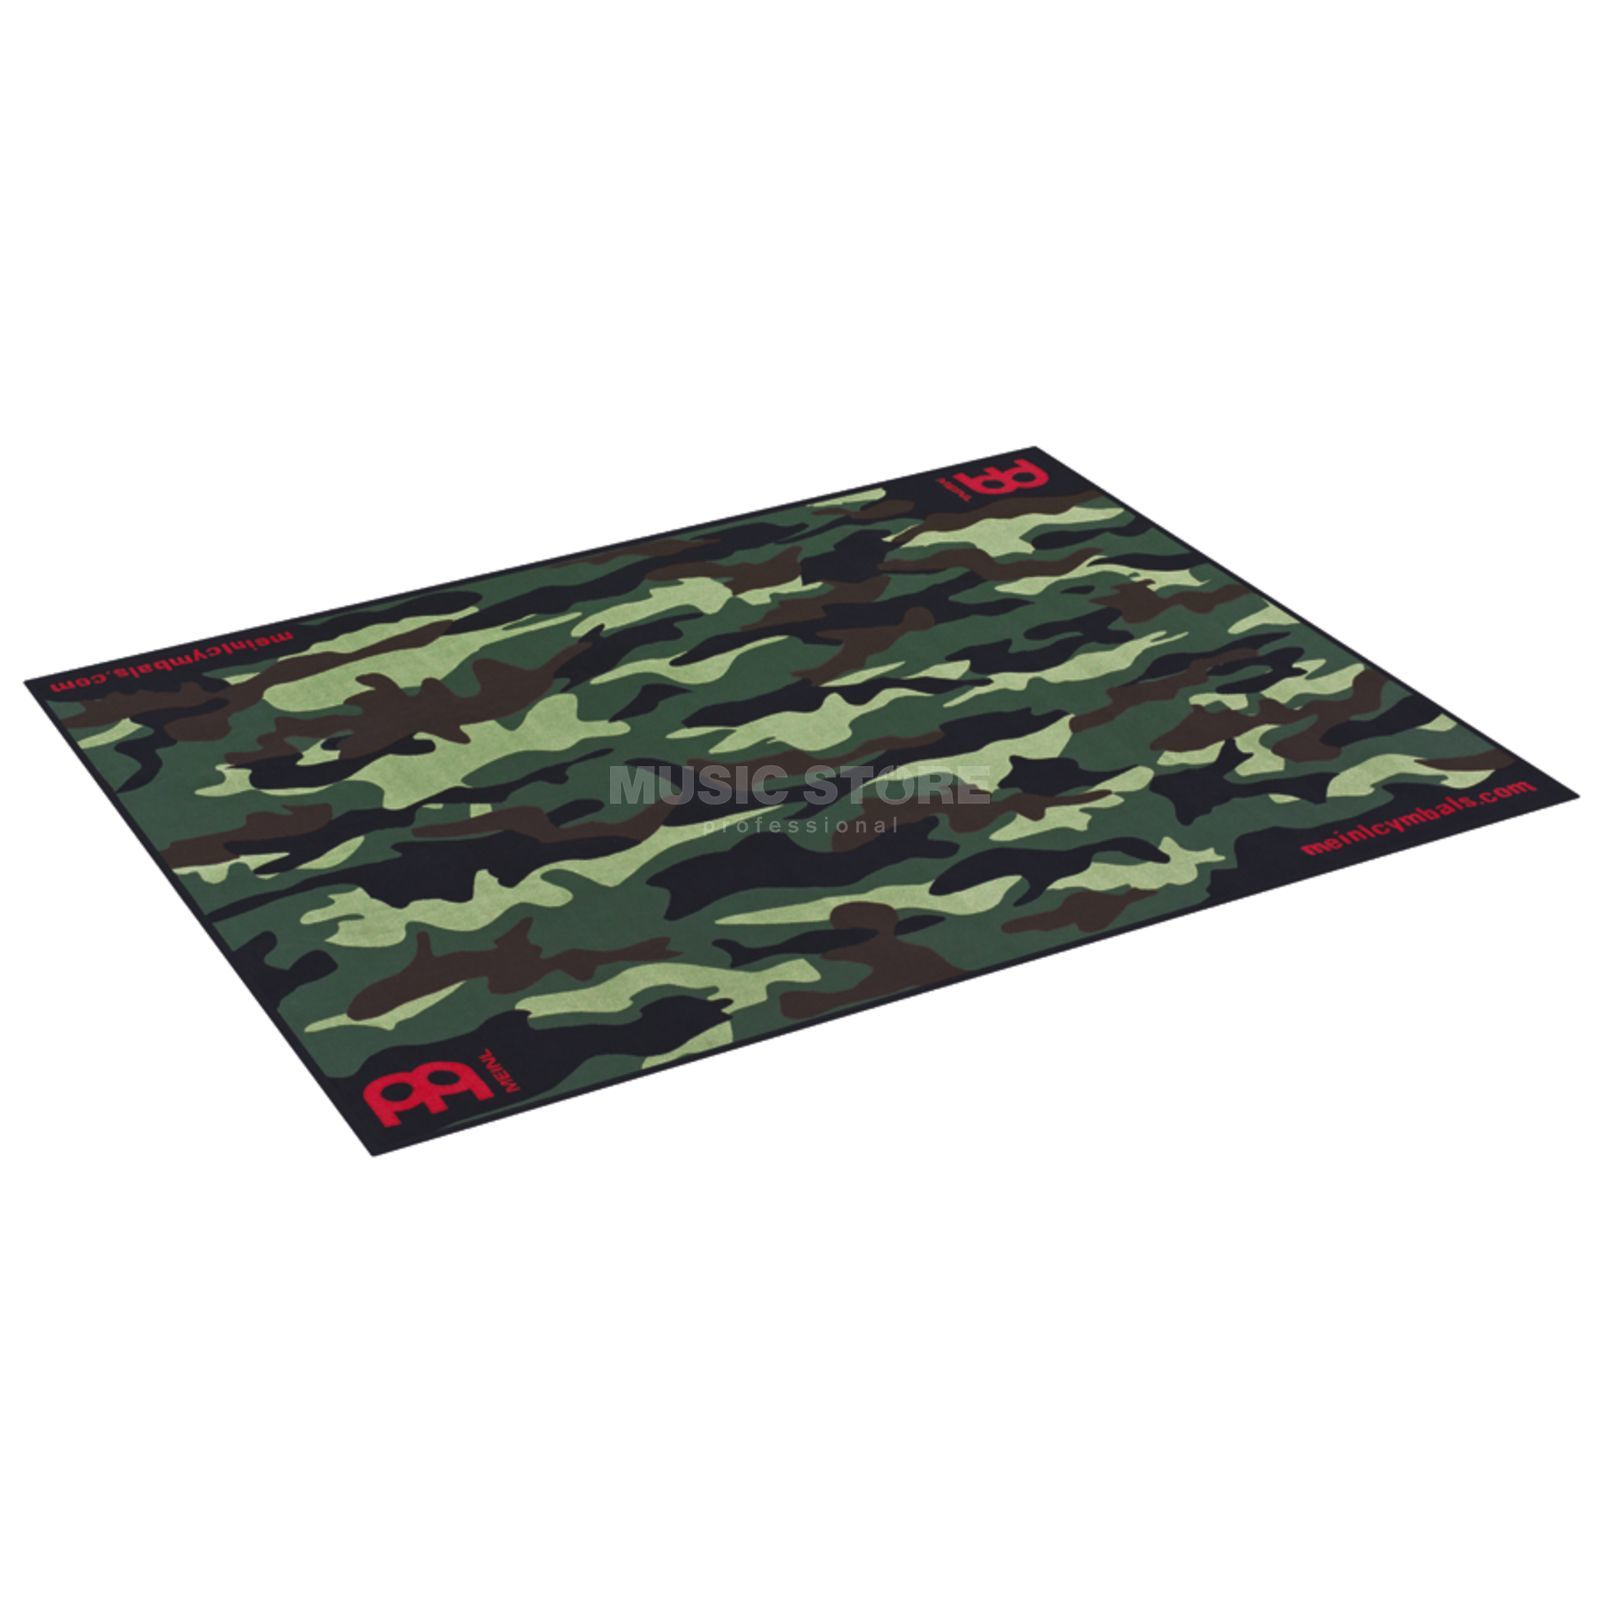 Meinl Drum Rug MDR-C1 Camouflage finish Product Image